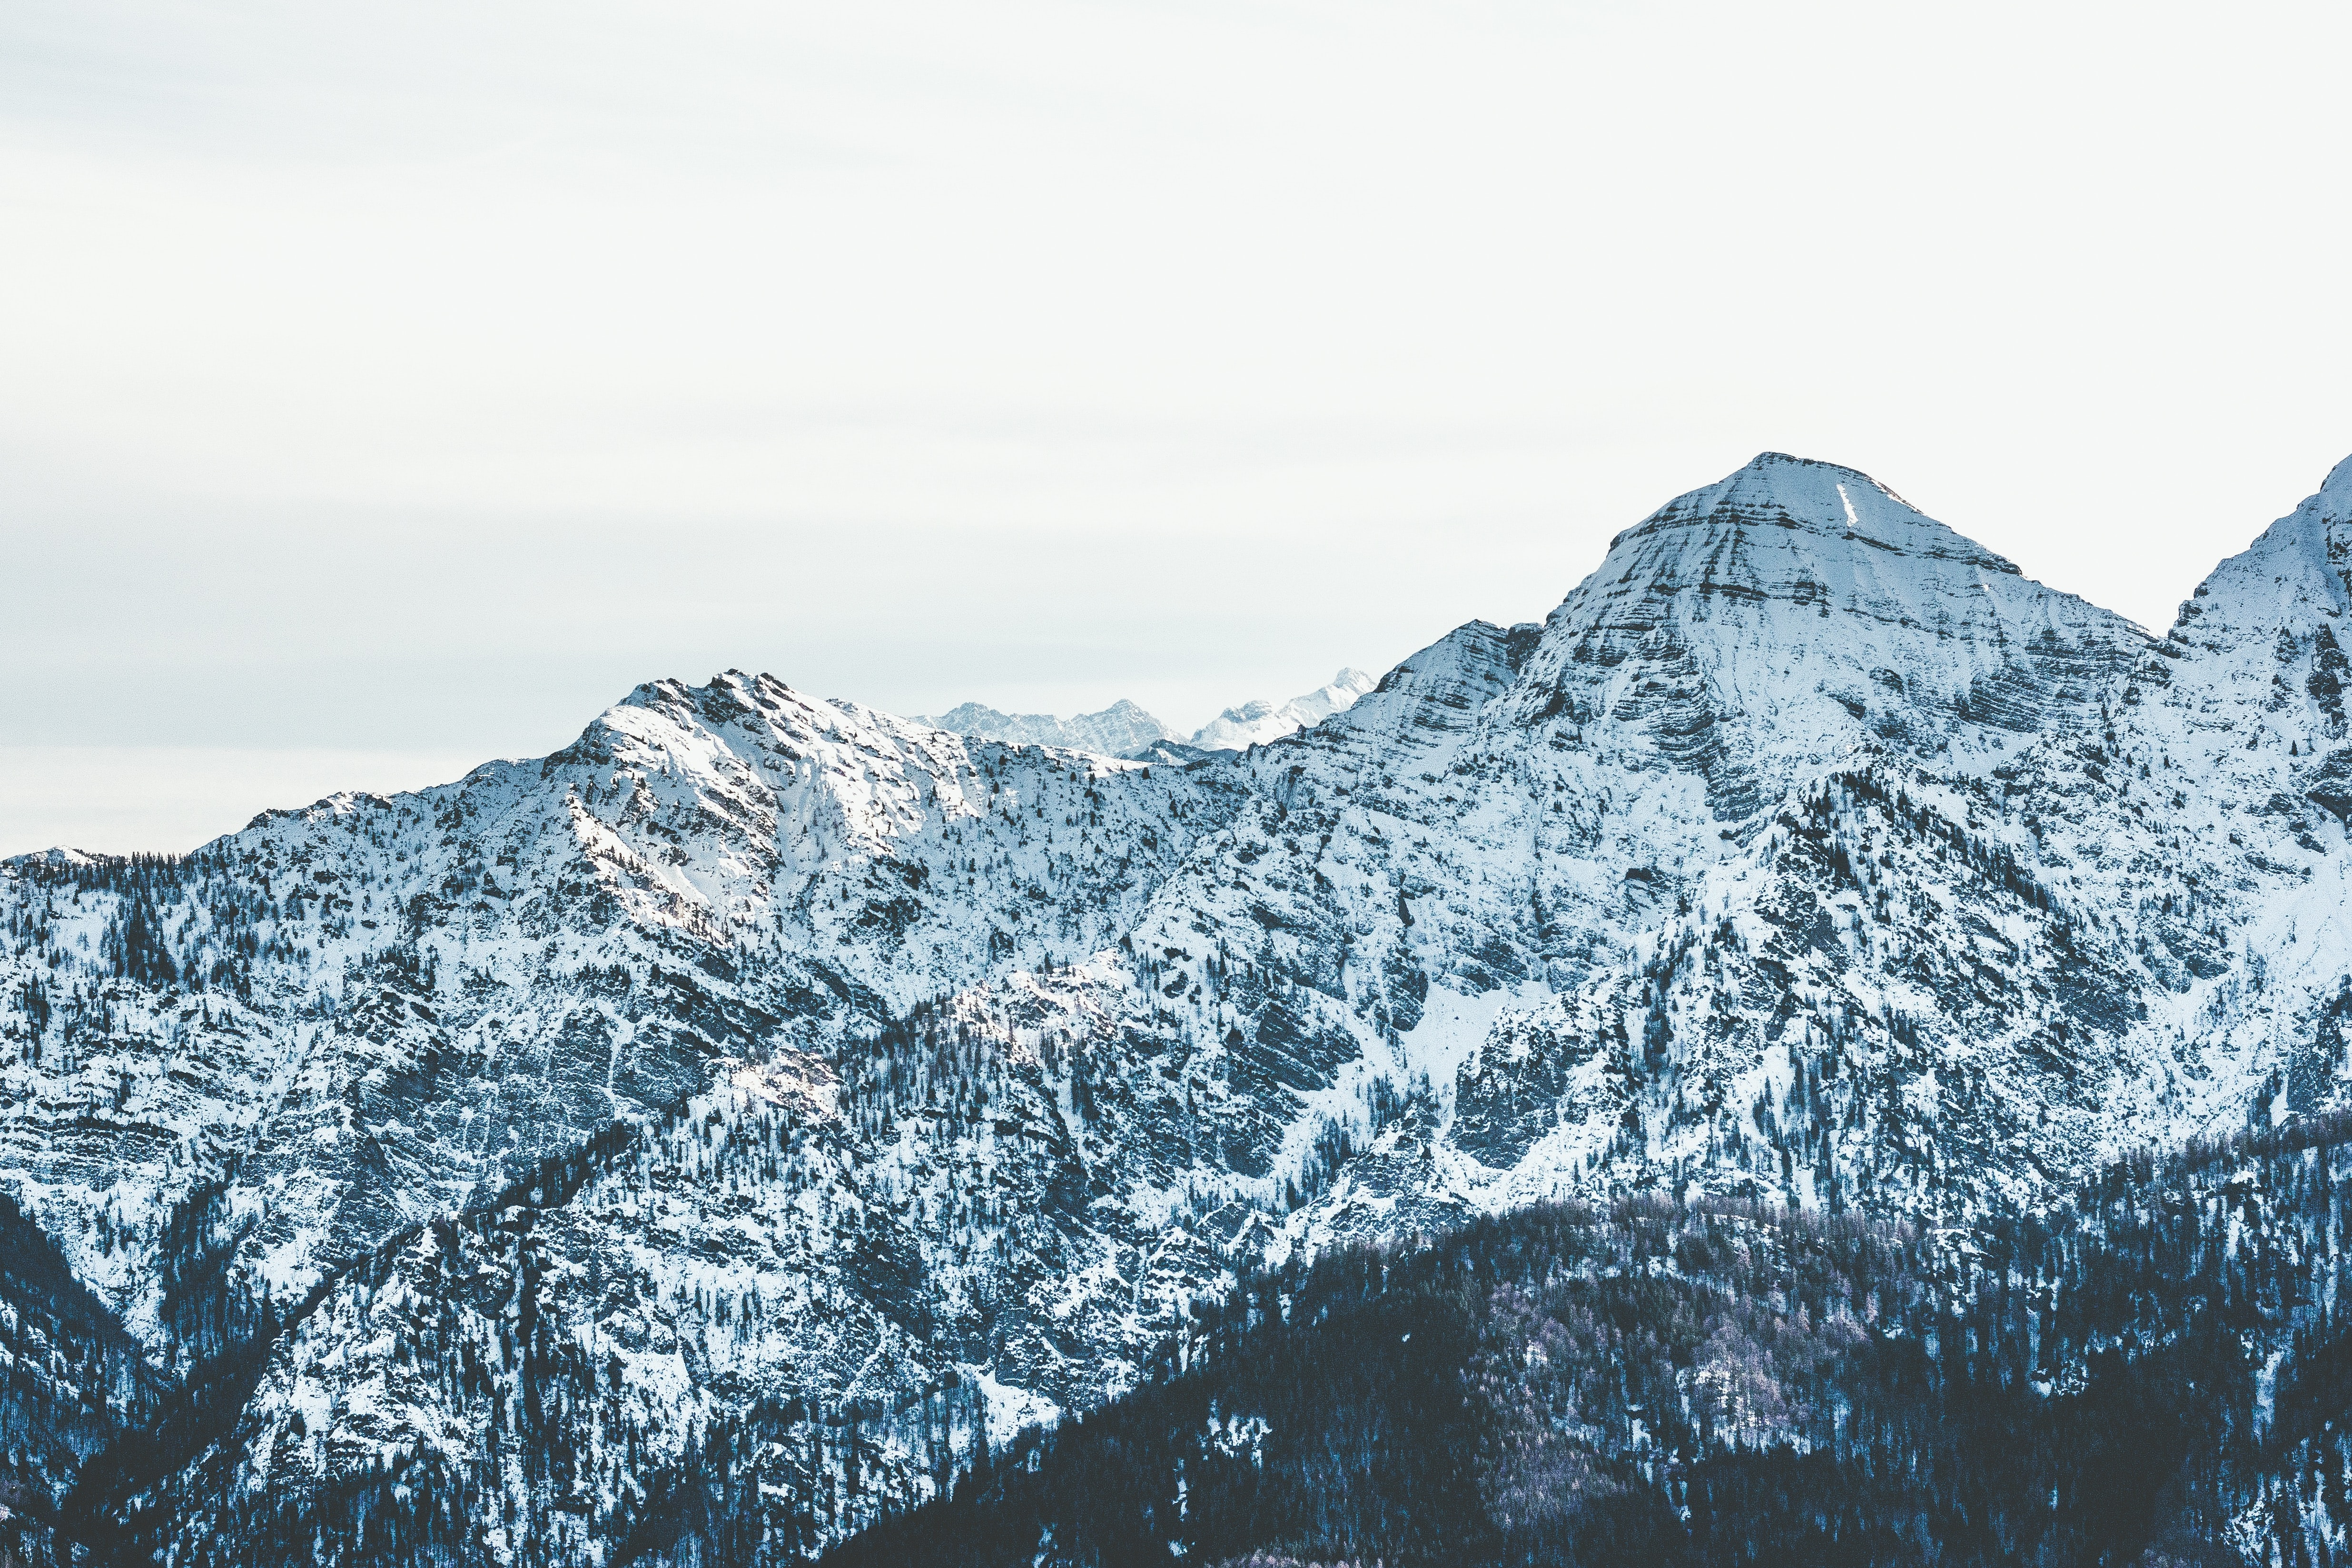 landscape photography of ice mountain